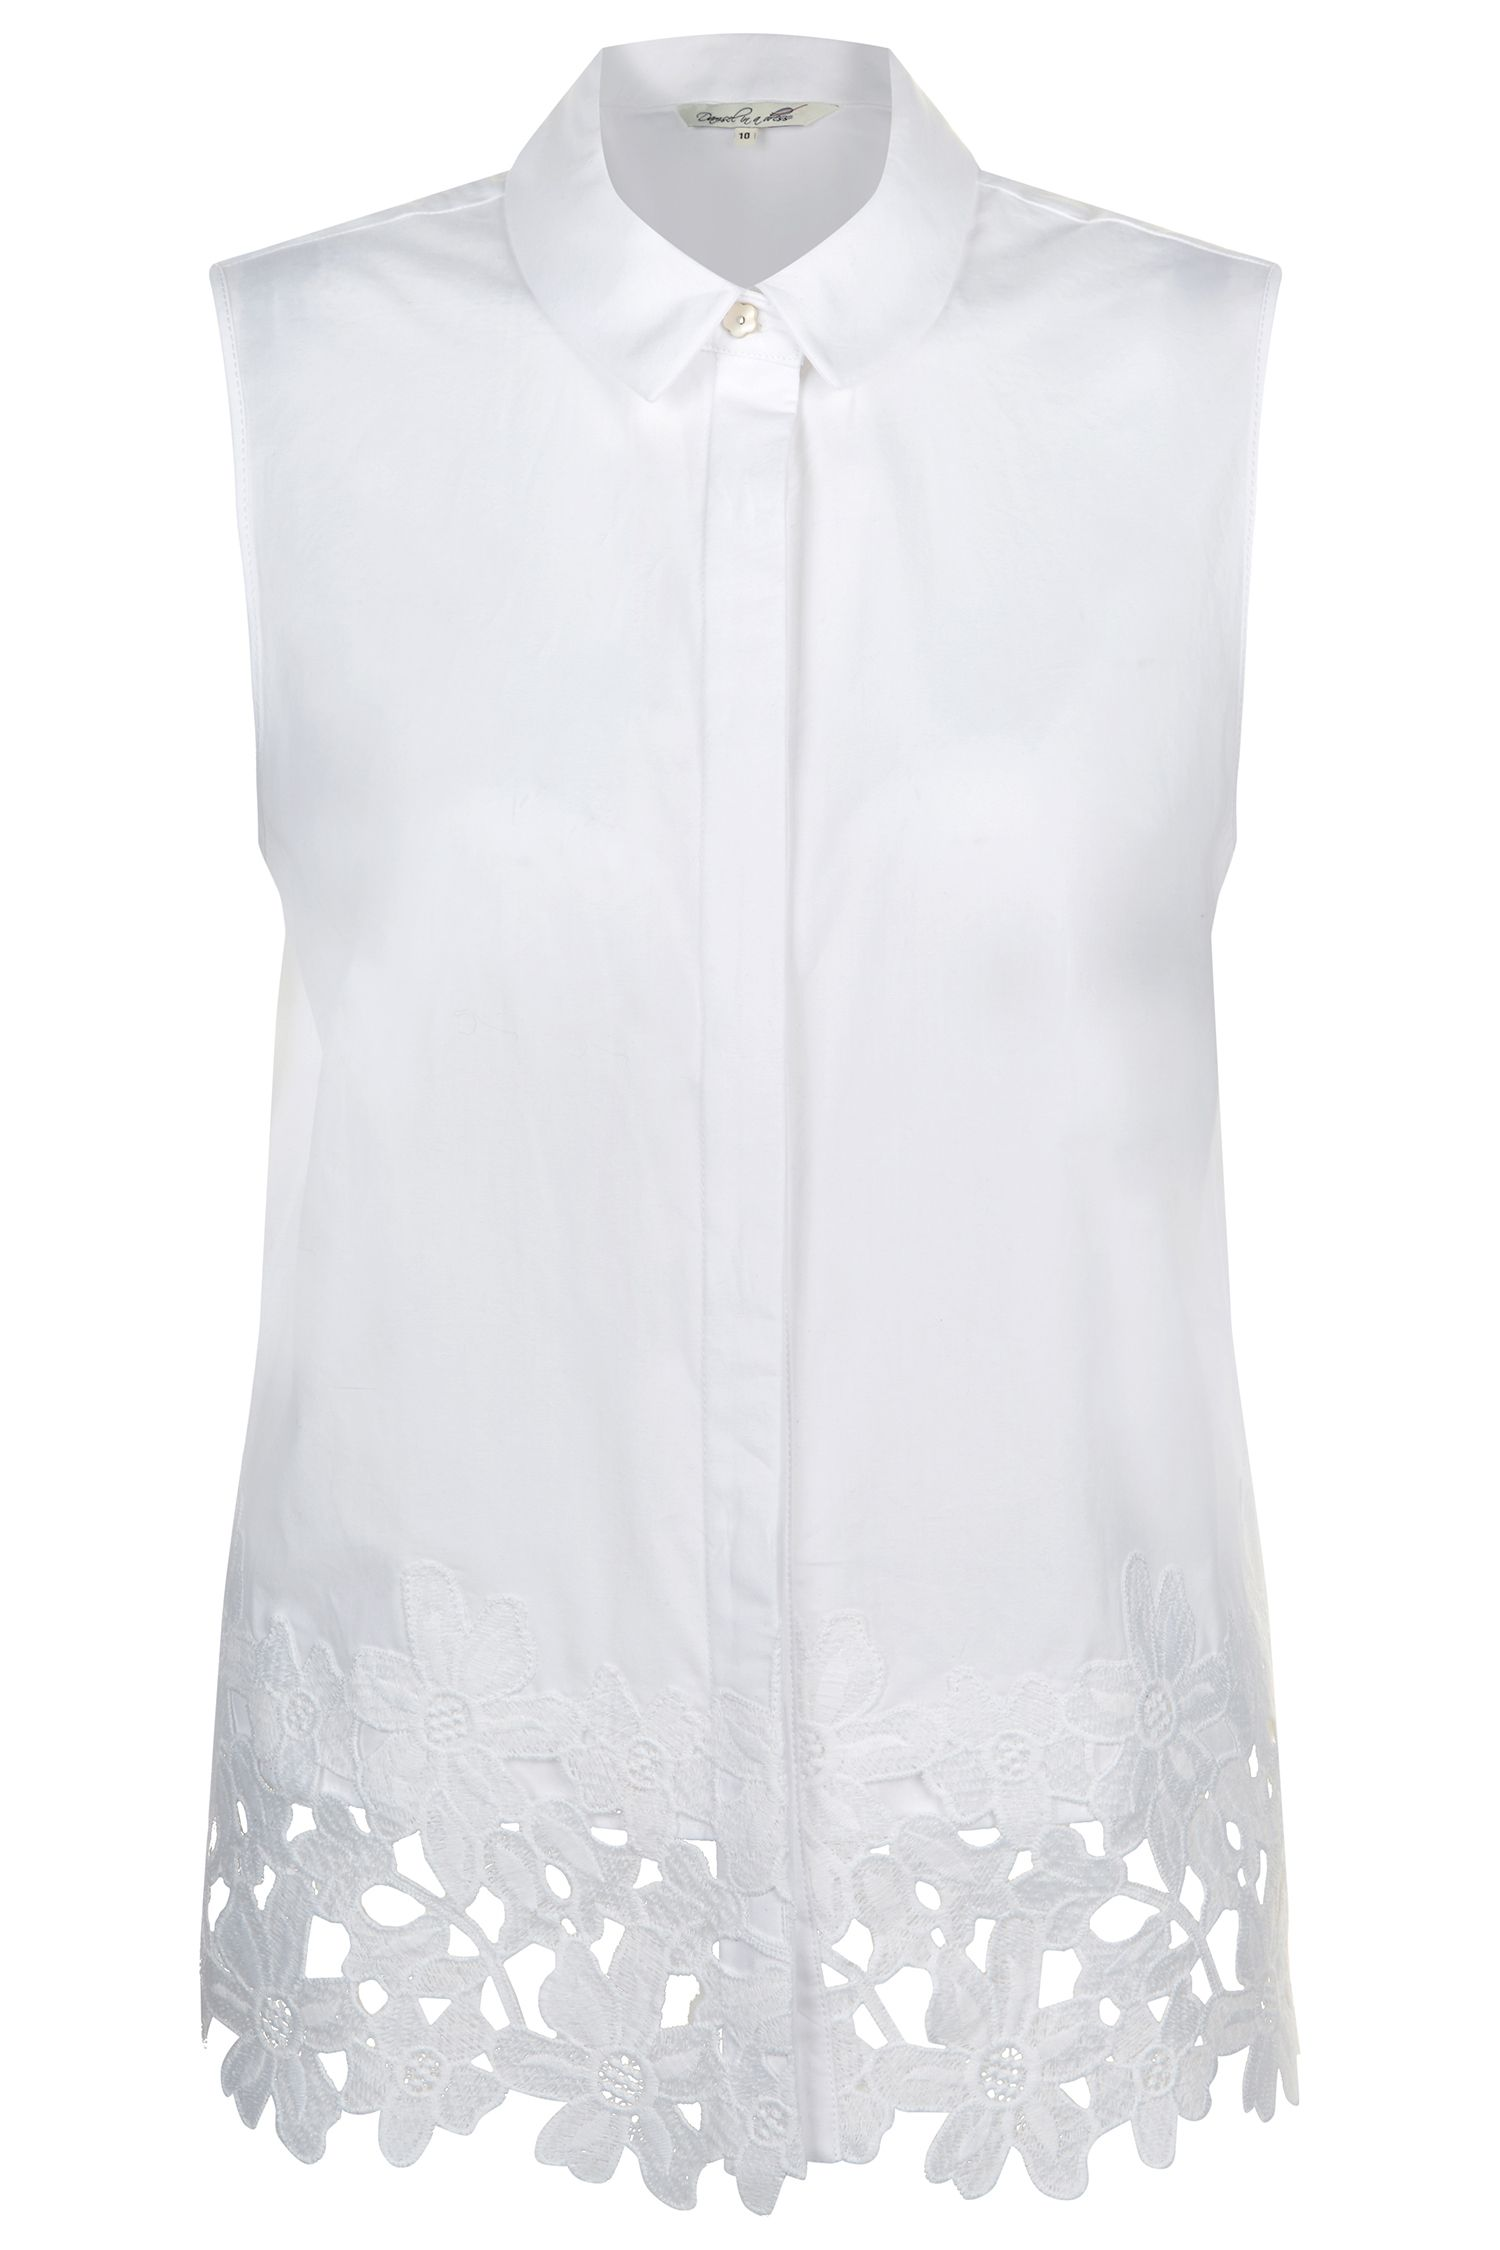 Damsel in a Dress Malibu Shirt, White